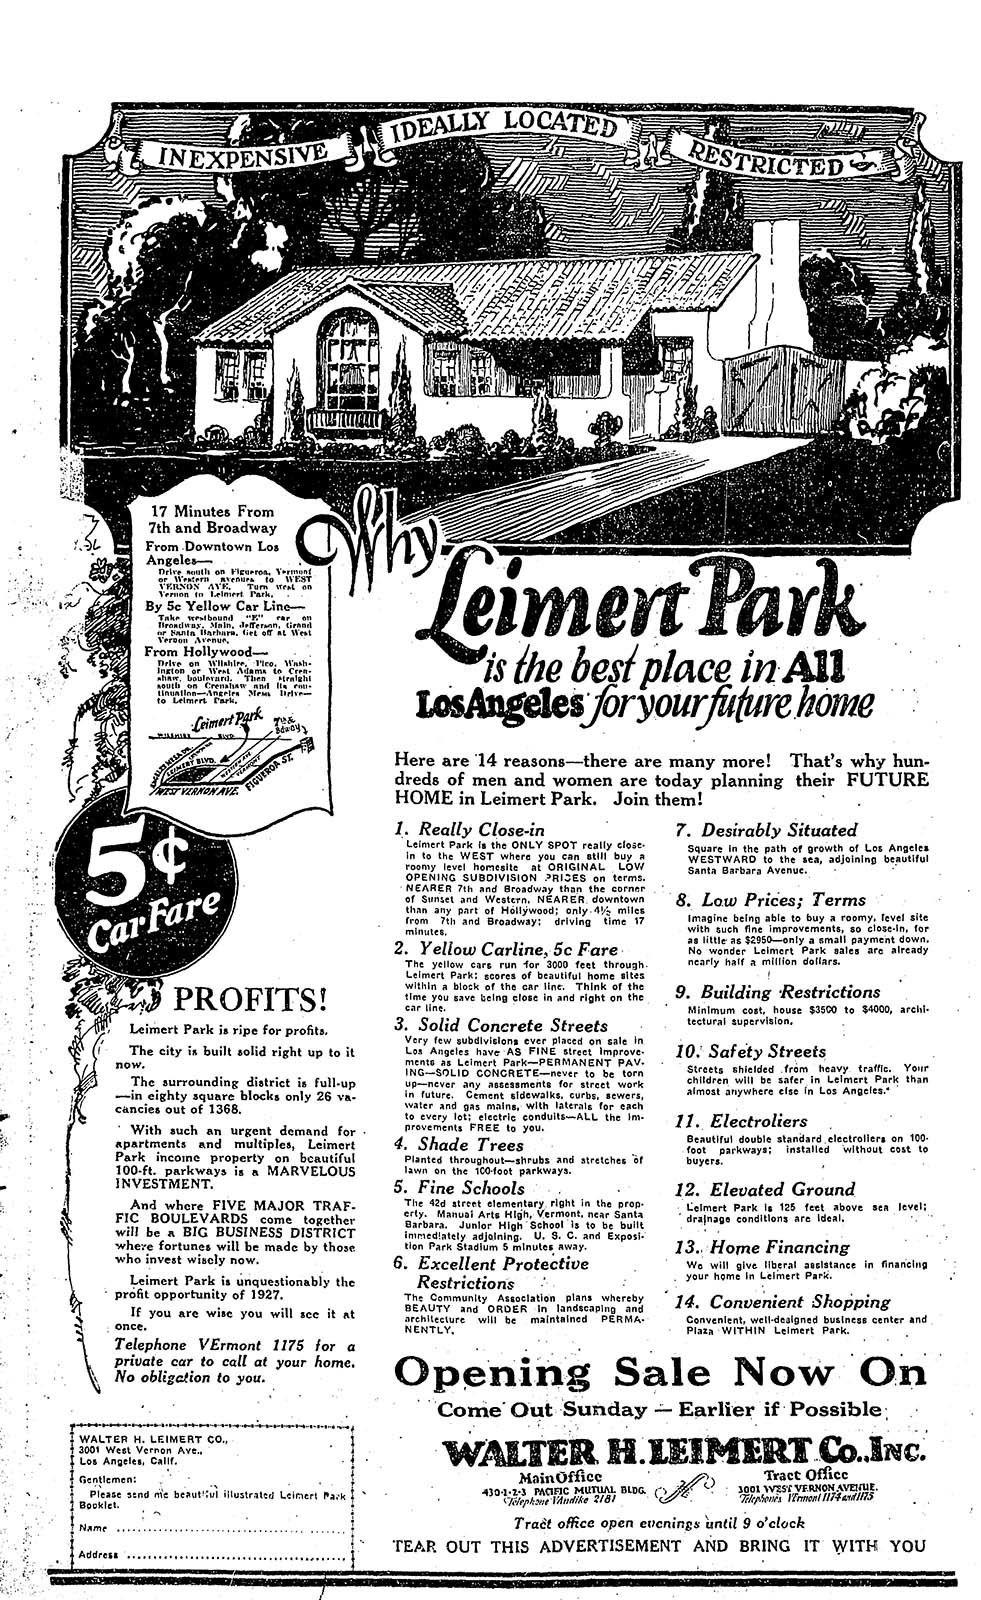 An ad for the original Leimert Park development that appeared in the Los Angeles Times in 1927.